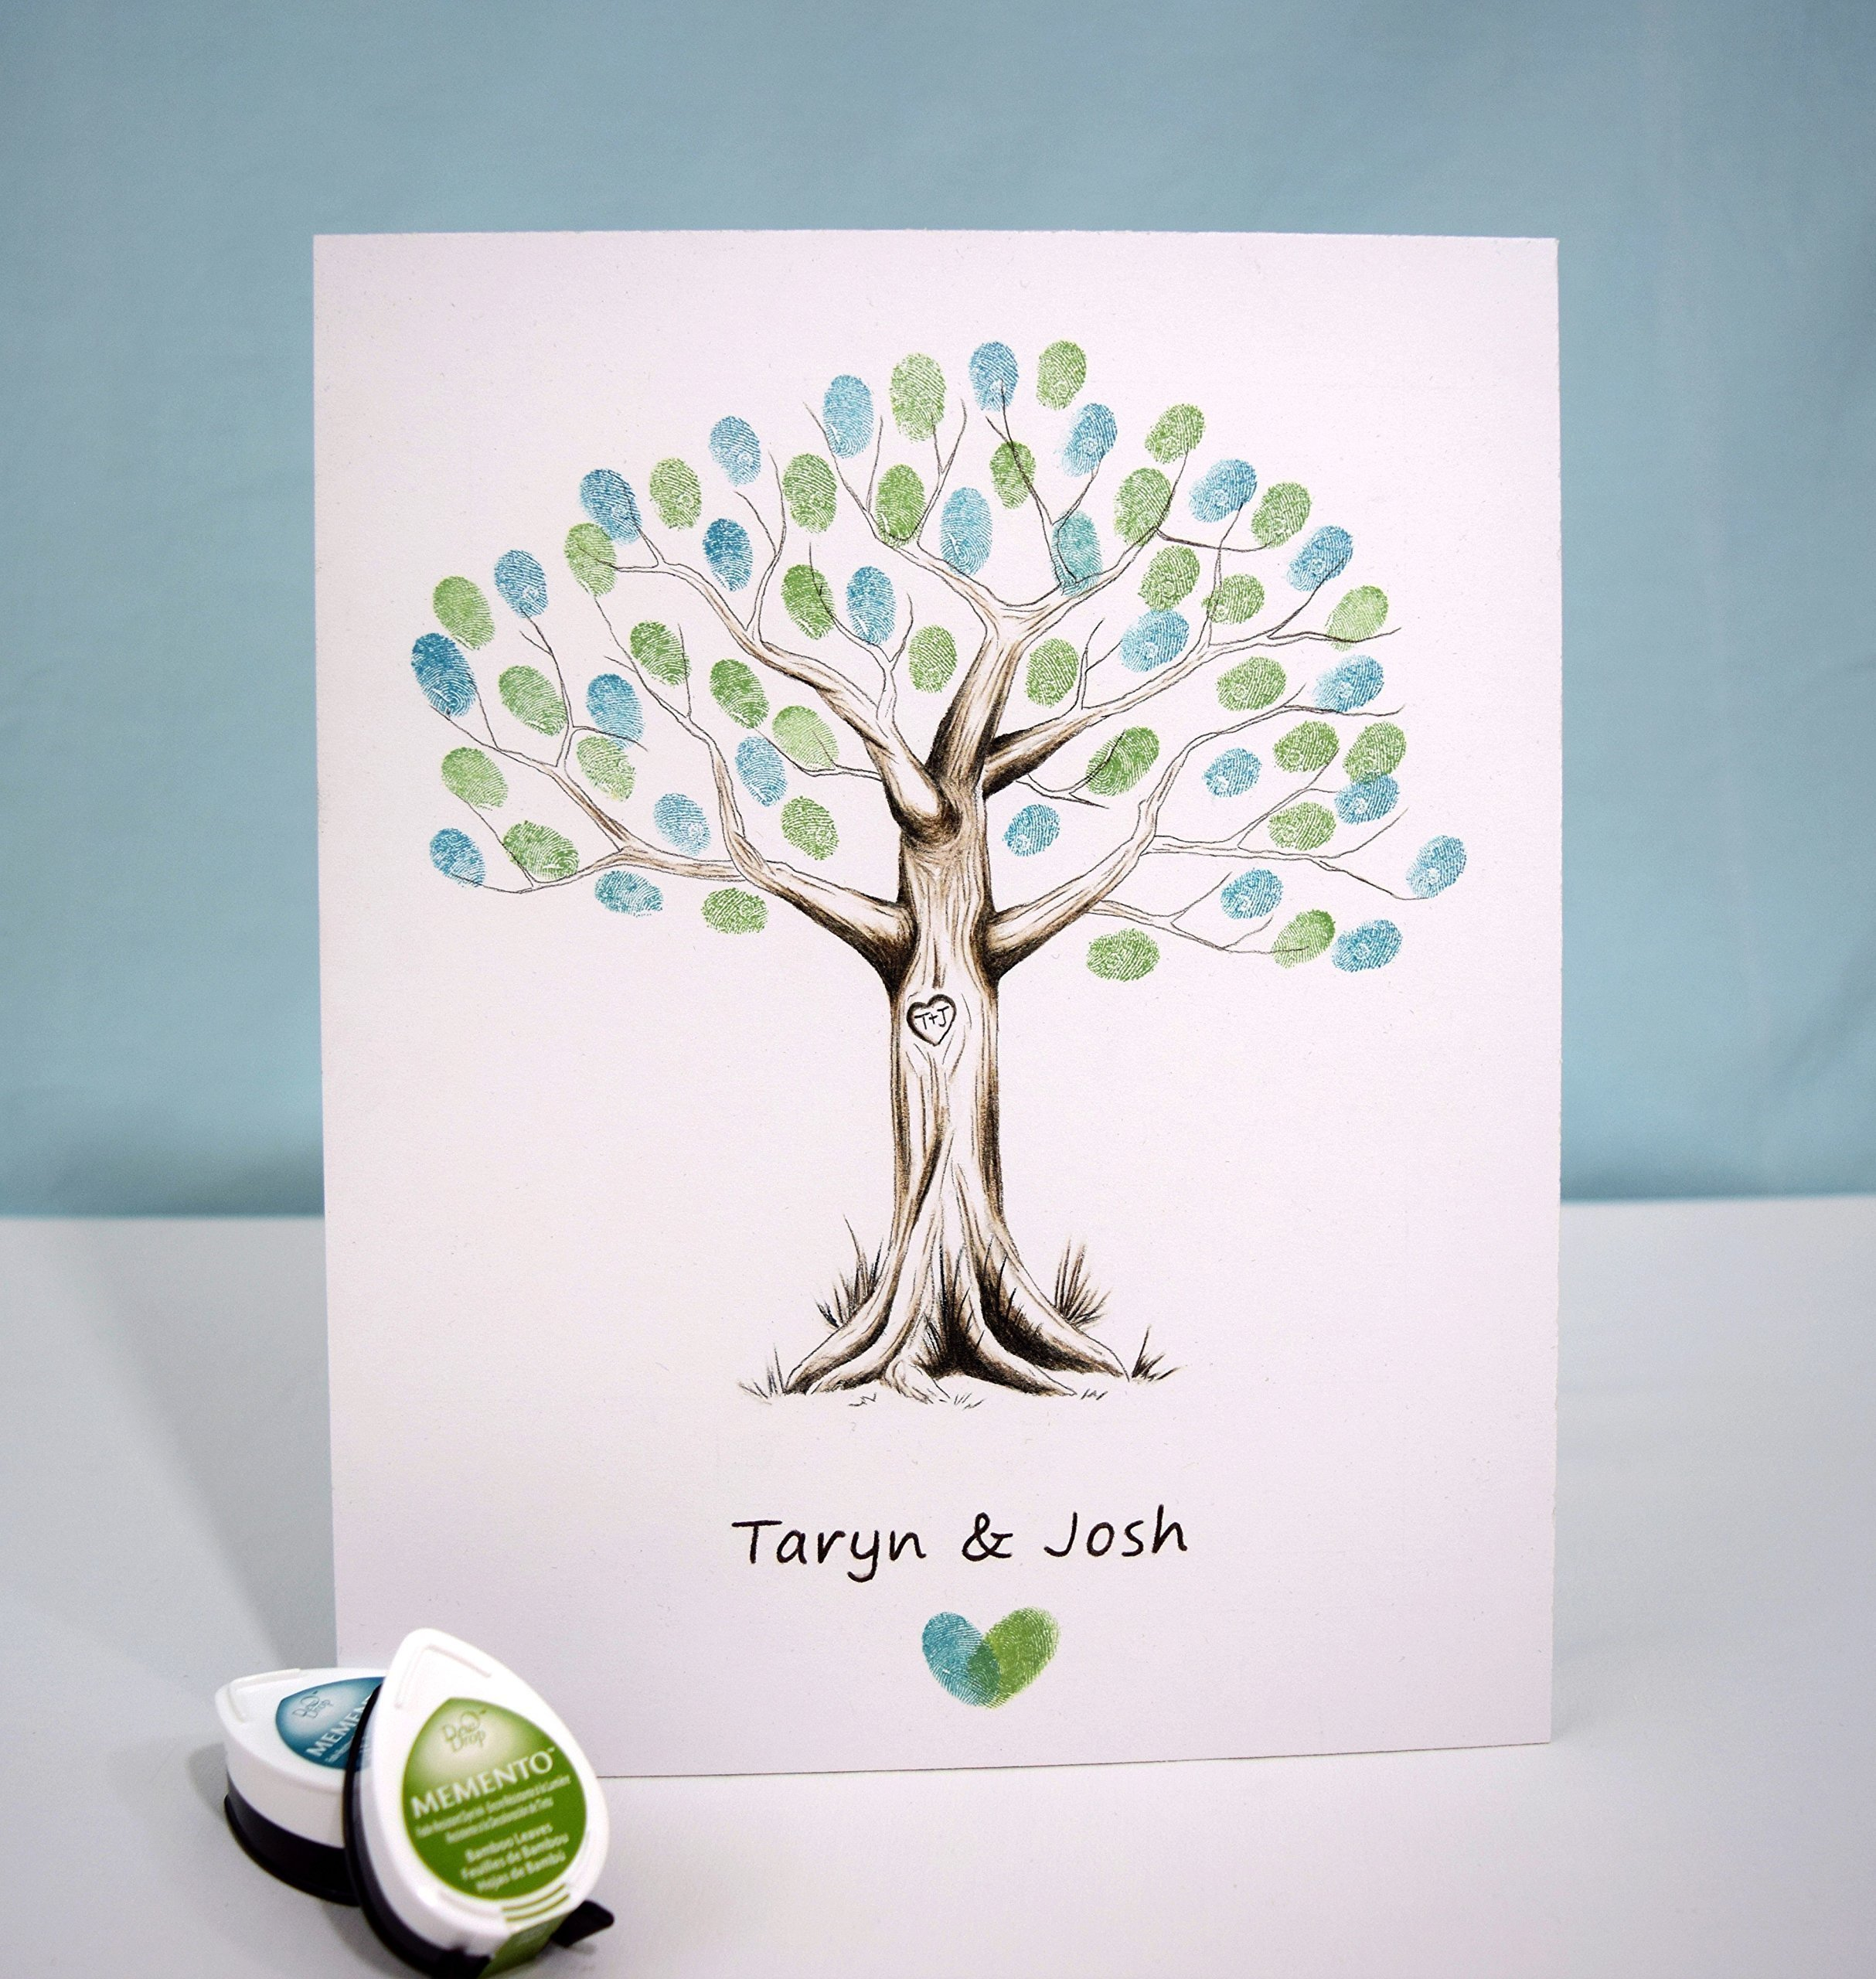 Fingerprint Tree custom wedding guestbook - Original thumbprint guest book alternative (Small Size Monochrome) includes 1 ink pad!!